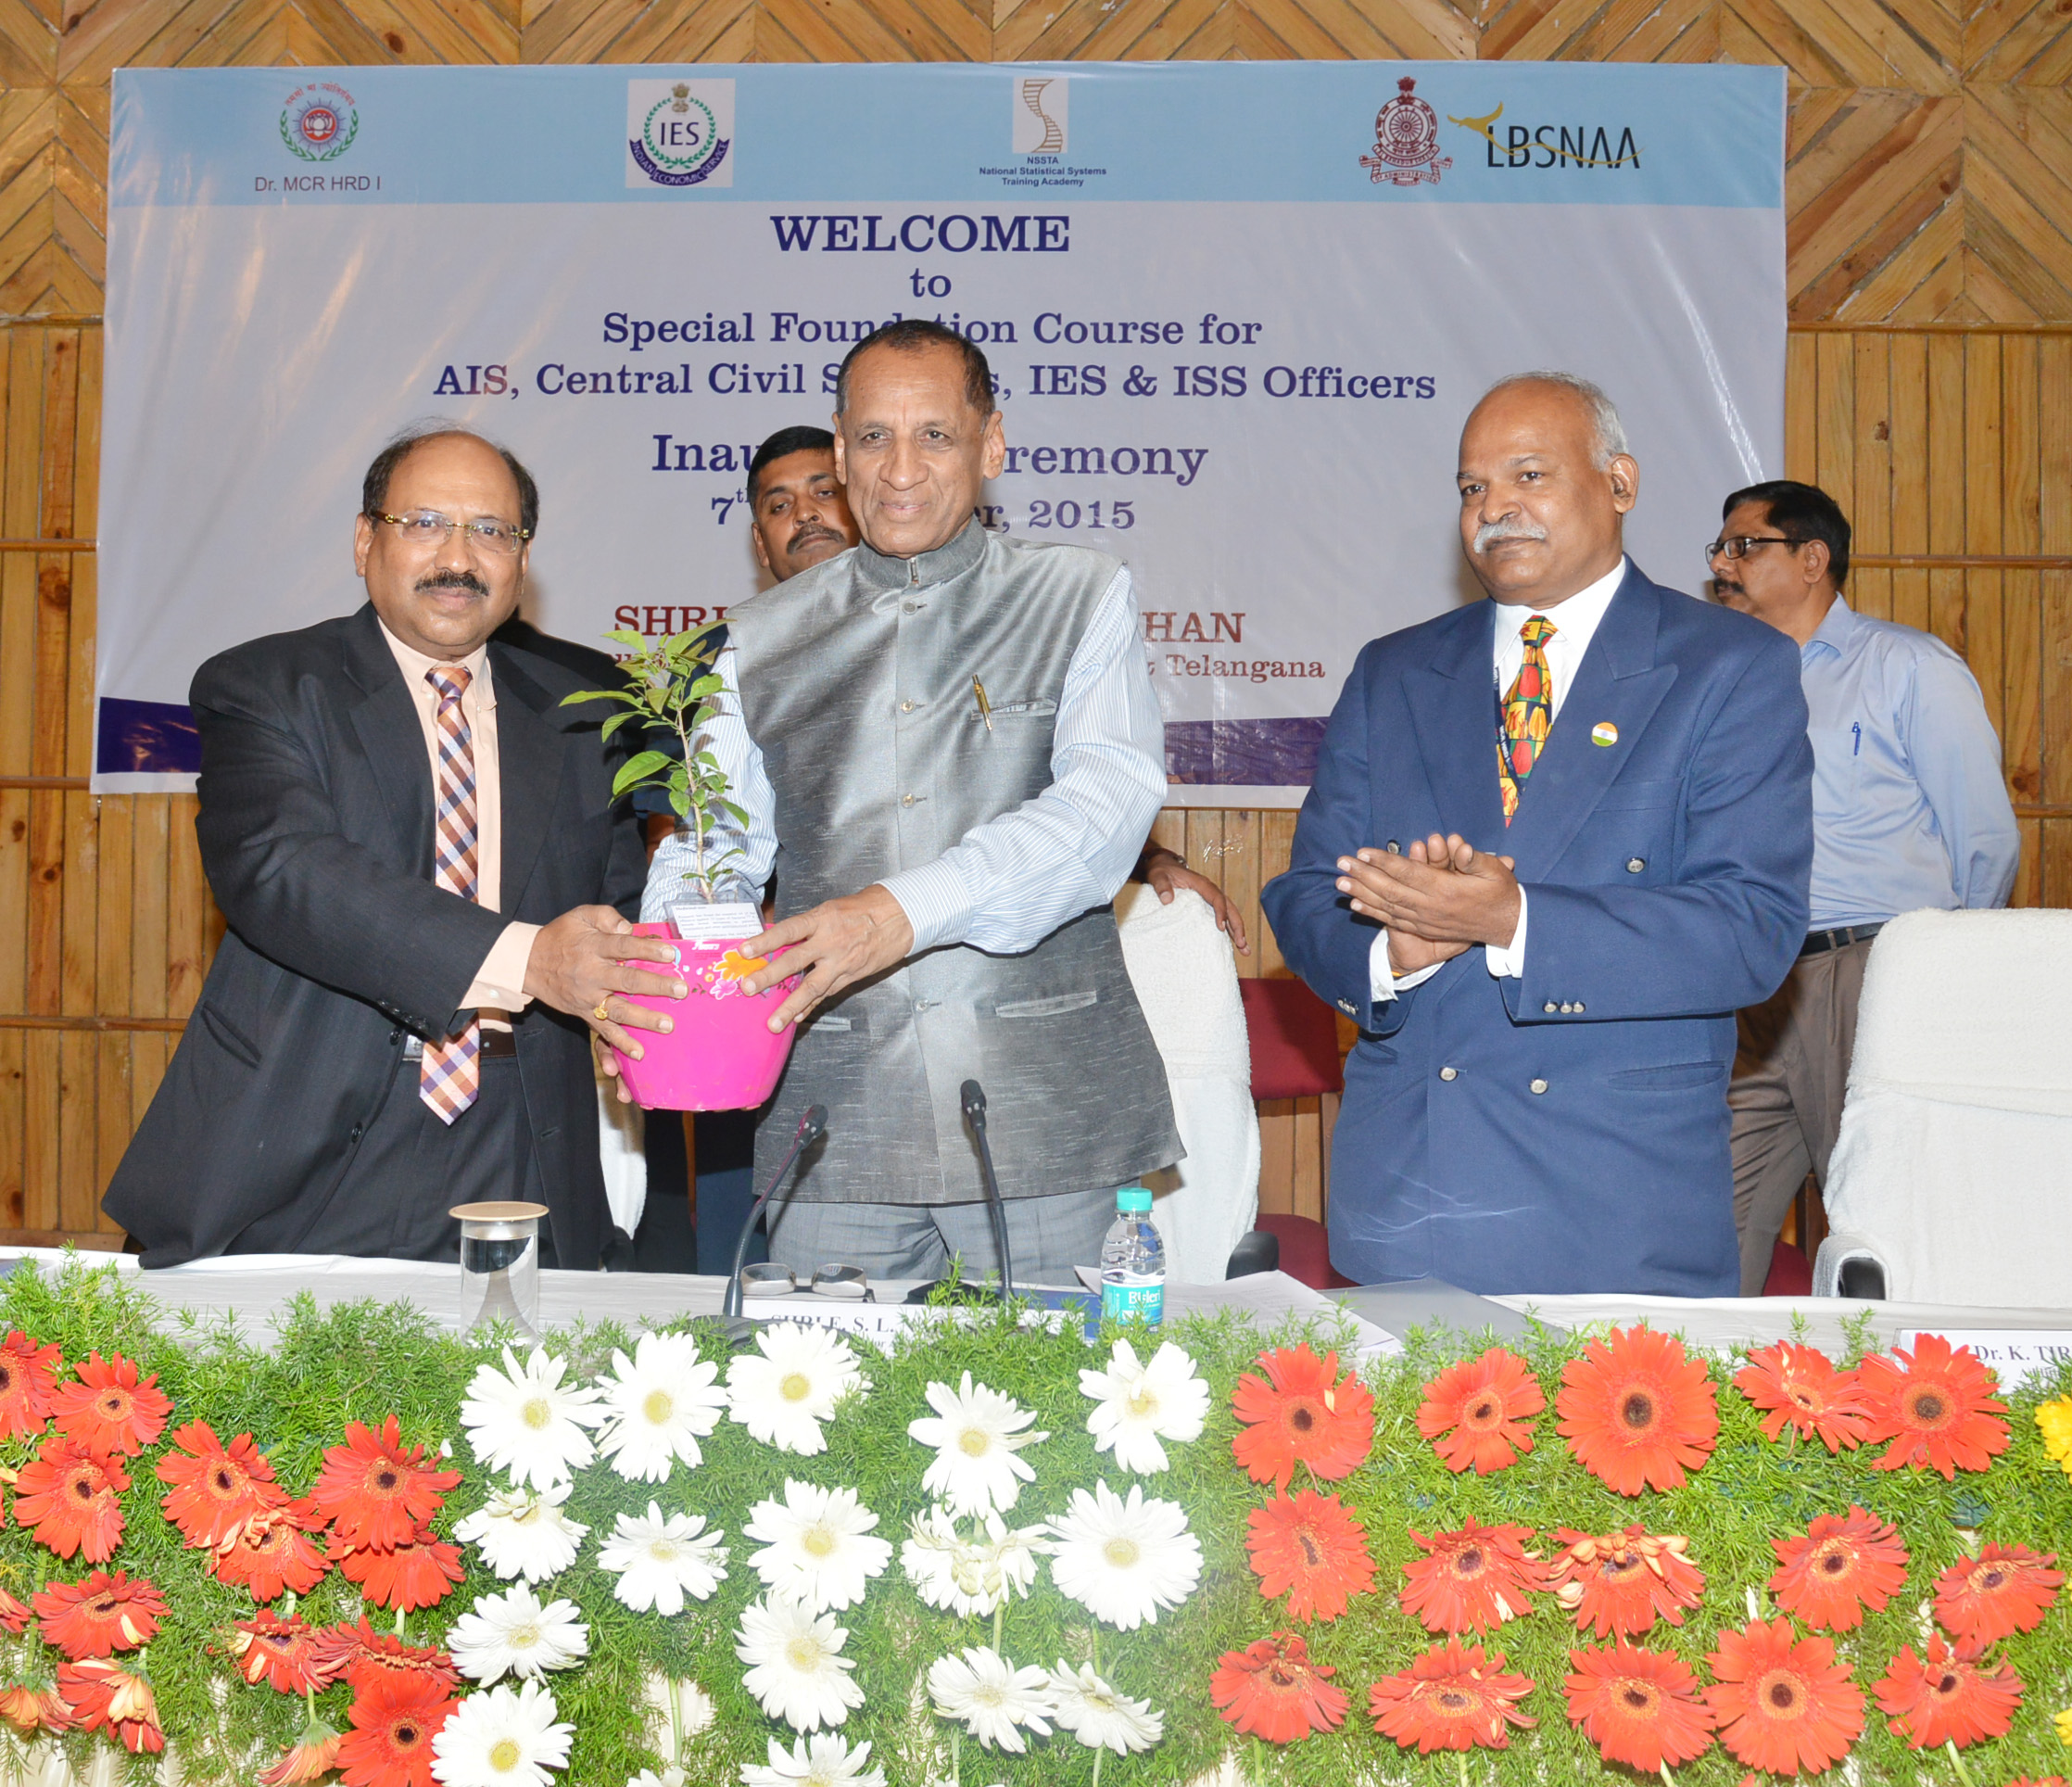 Governor ESL Narasimhan Is Seen Inaugurating The Special Foundation Course For All India Services & Central Civil Services Officers At Dr.MCRHRDI,Hyderabad On 07-09-2015.